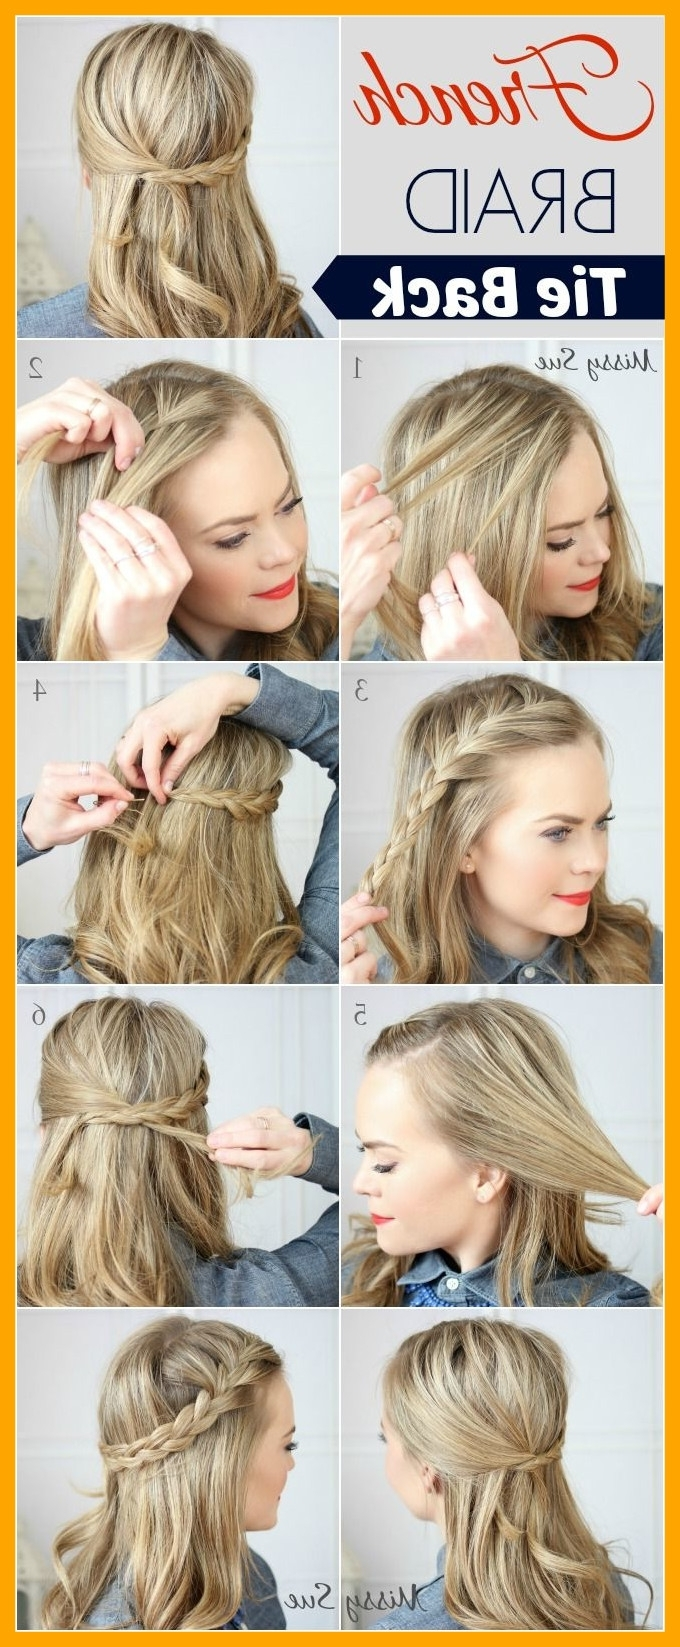 Appealing Best Diy Wedding Hairstyles With Tulle Bridal At Home Pict Throughout Current Diy Wedding Hairstyles (View 6 of 15)